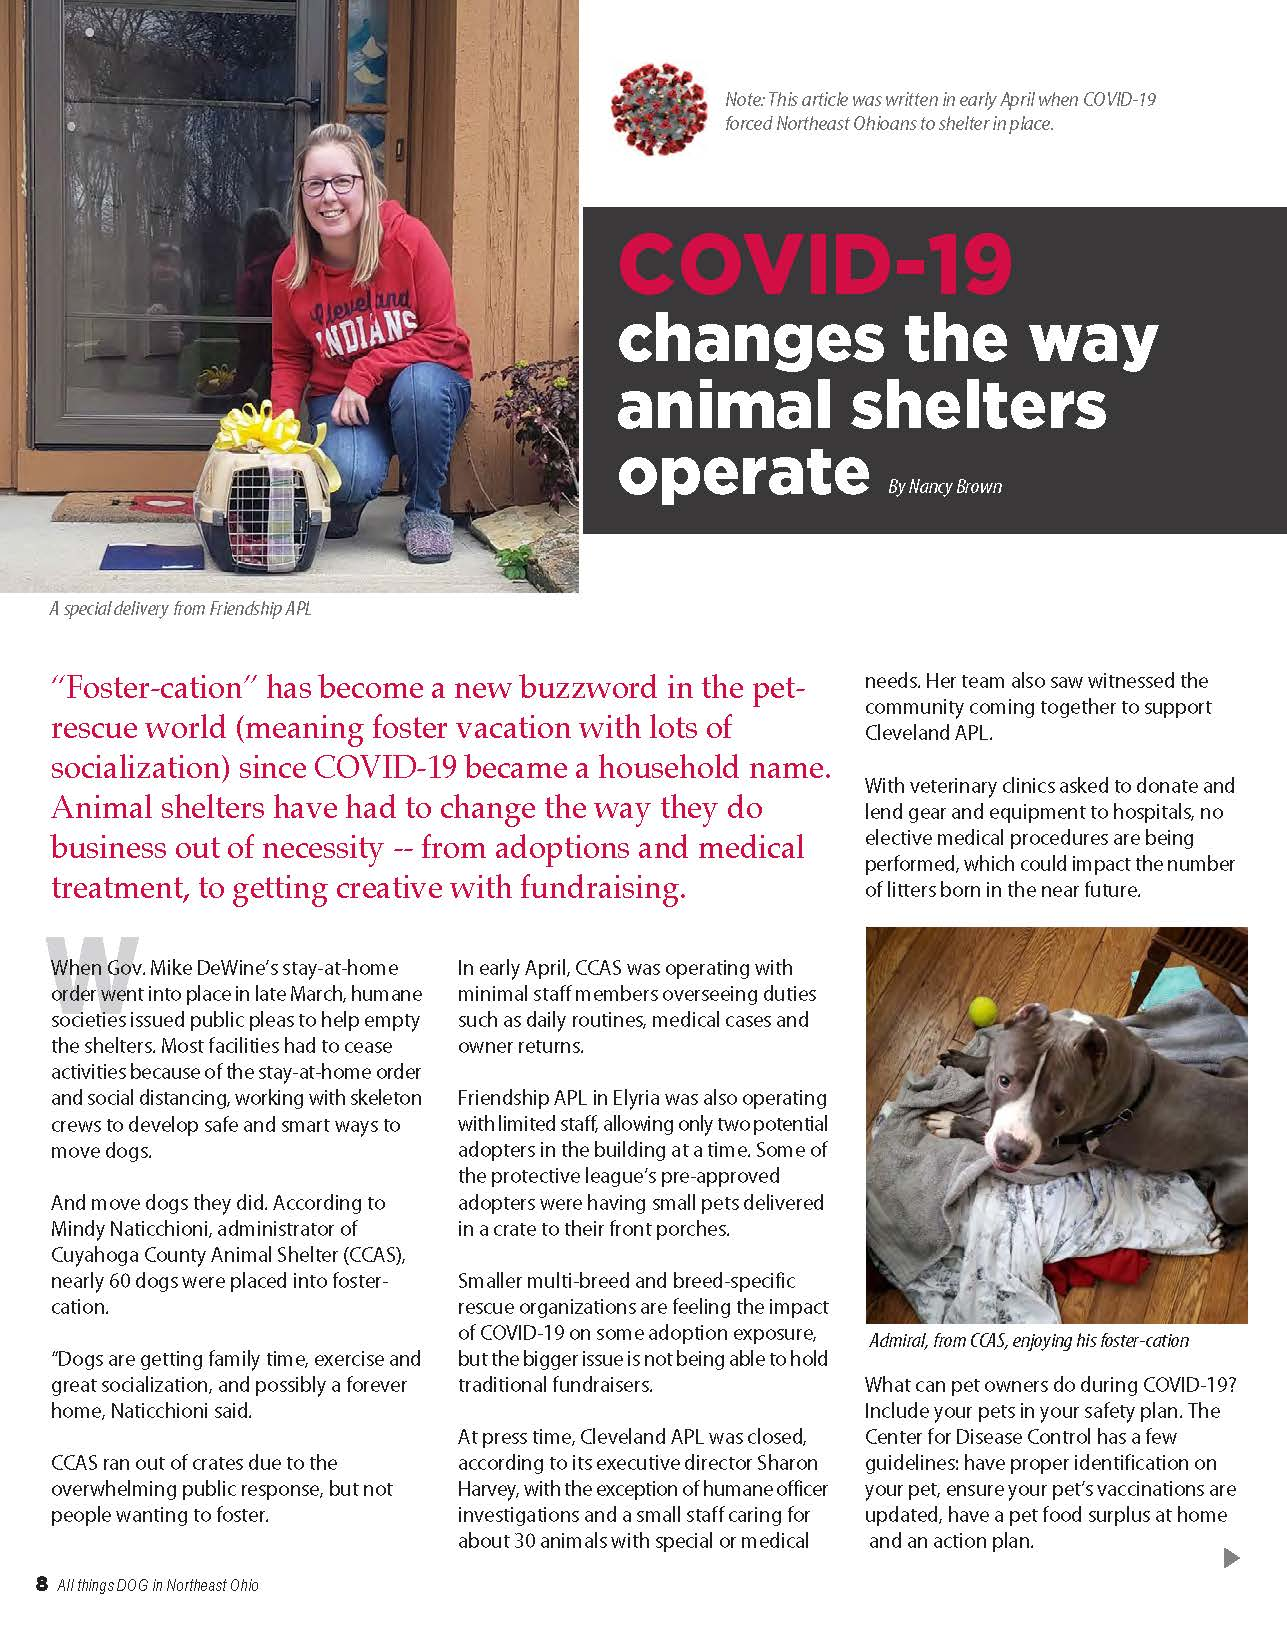 COVID-19 changes the way animal shelters operate